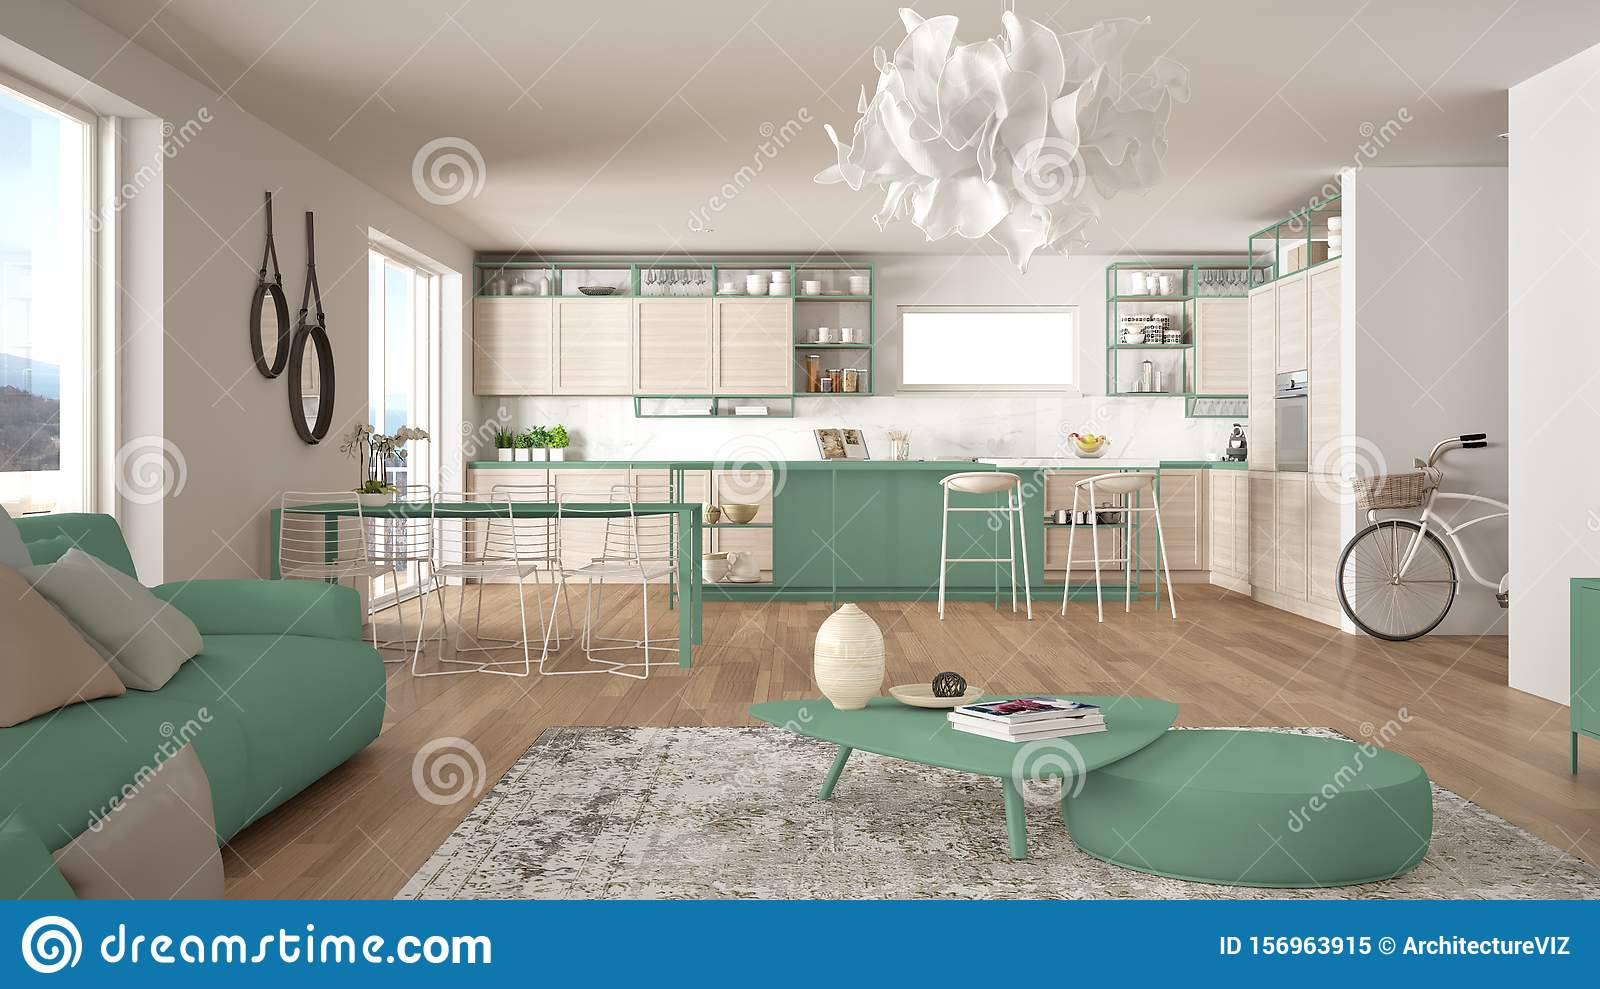 Penthouse Living Room And Kitchen Interior Design Lounge With Sofa And Carpet Dining Table Island Stools Parquet Modern Stock Image Image Of Designer Dining 156963915